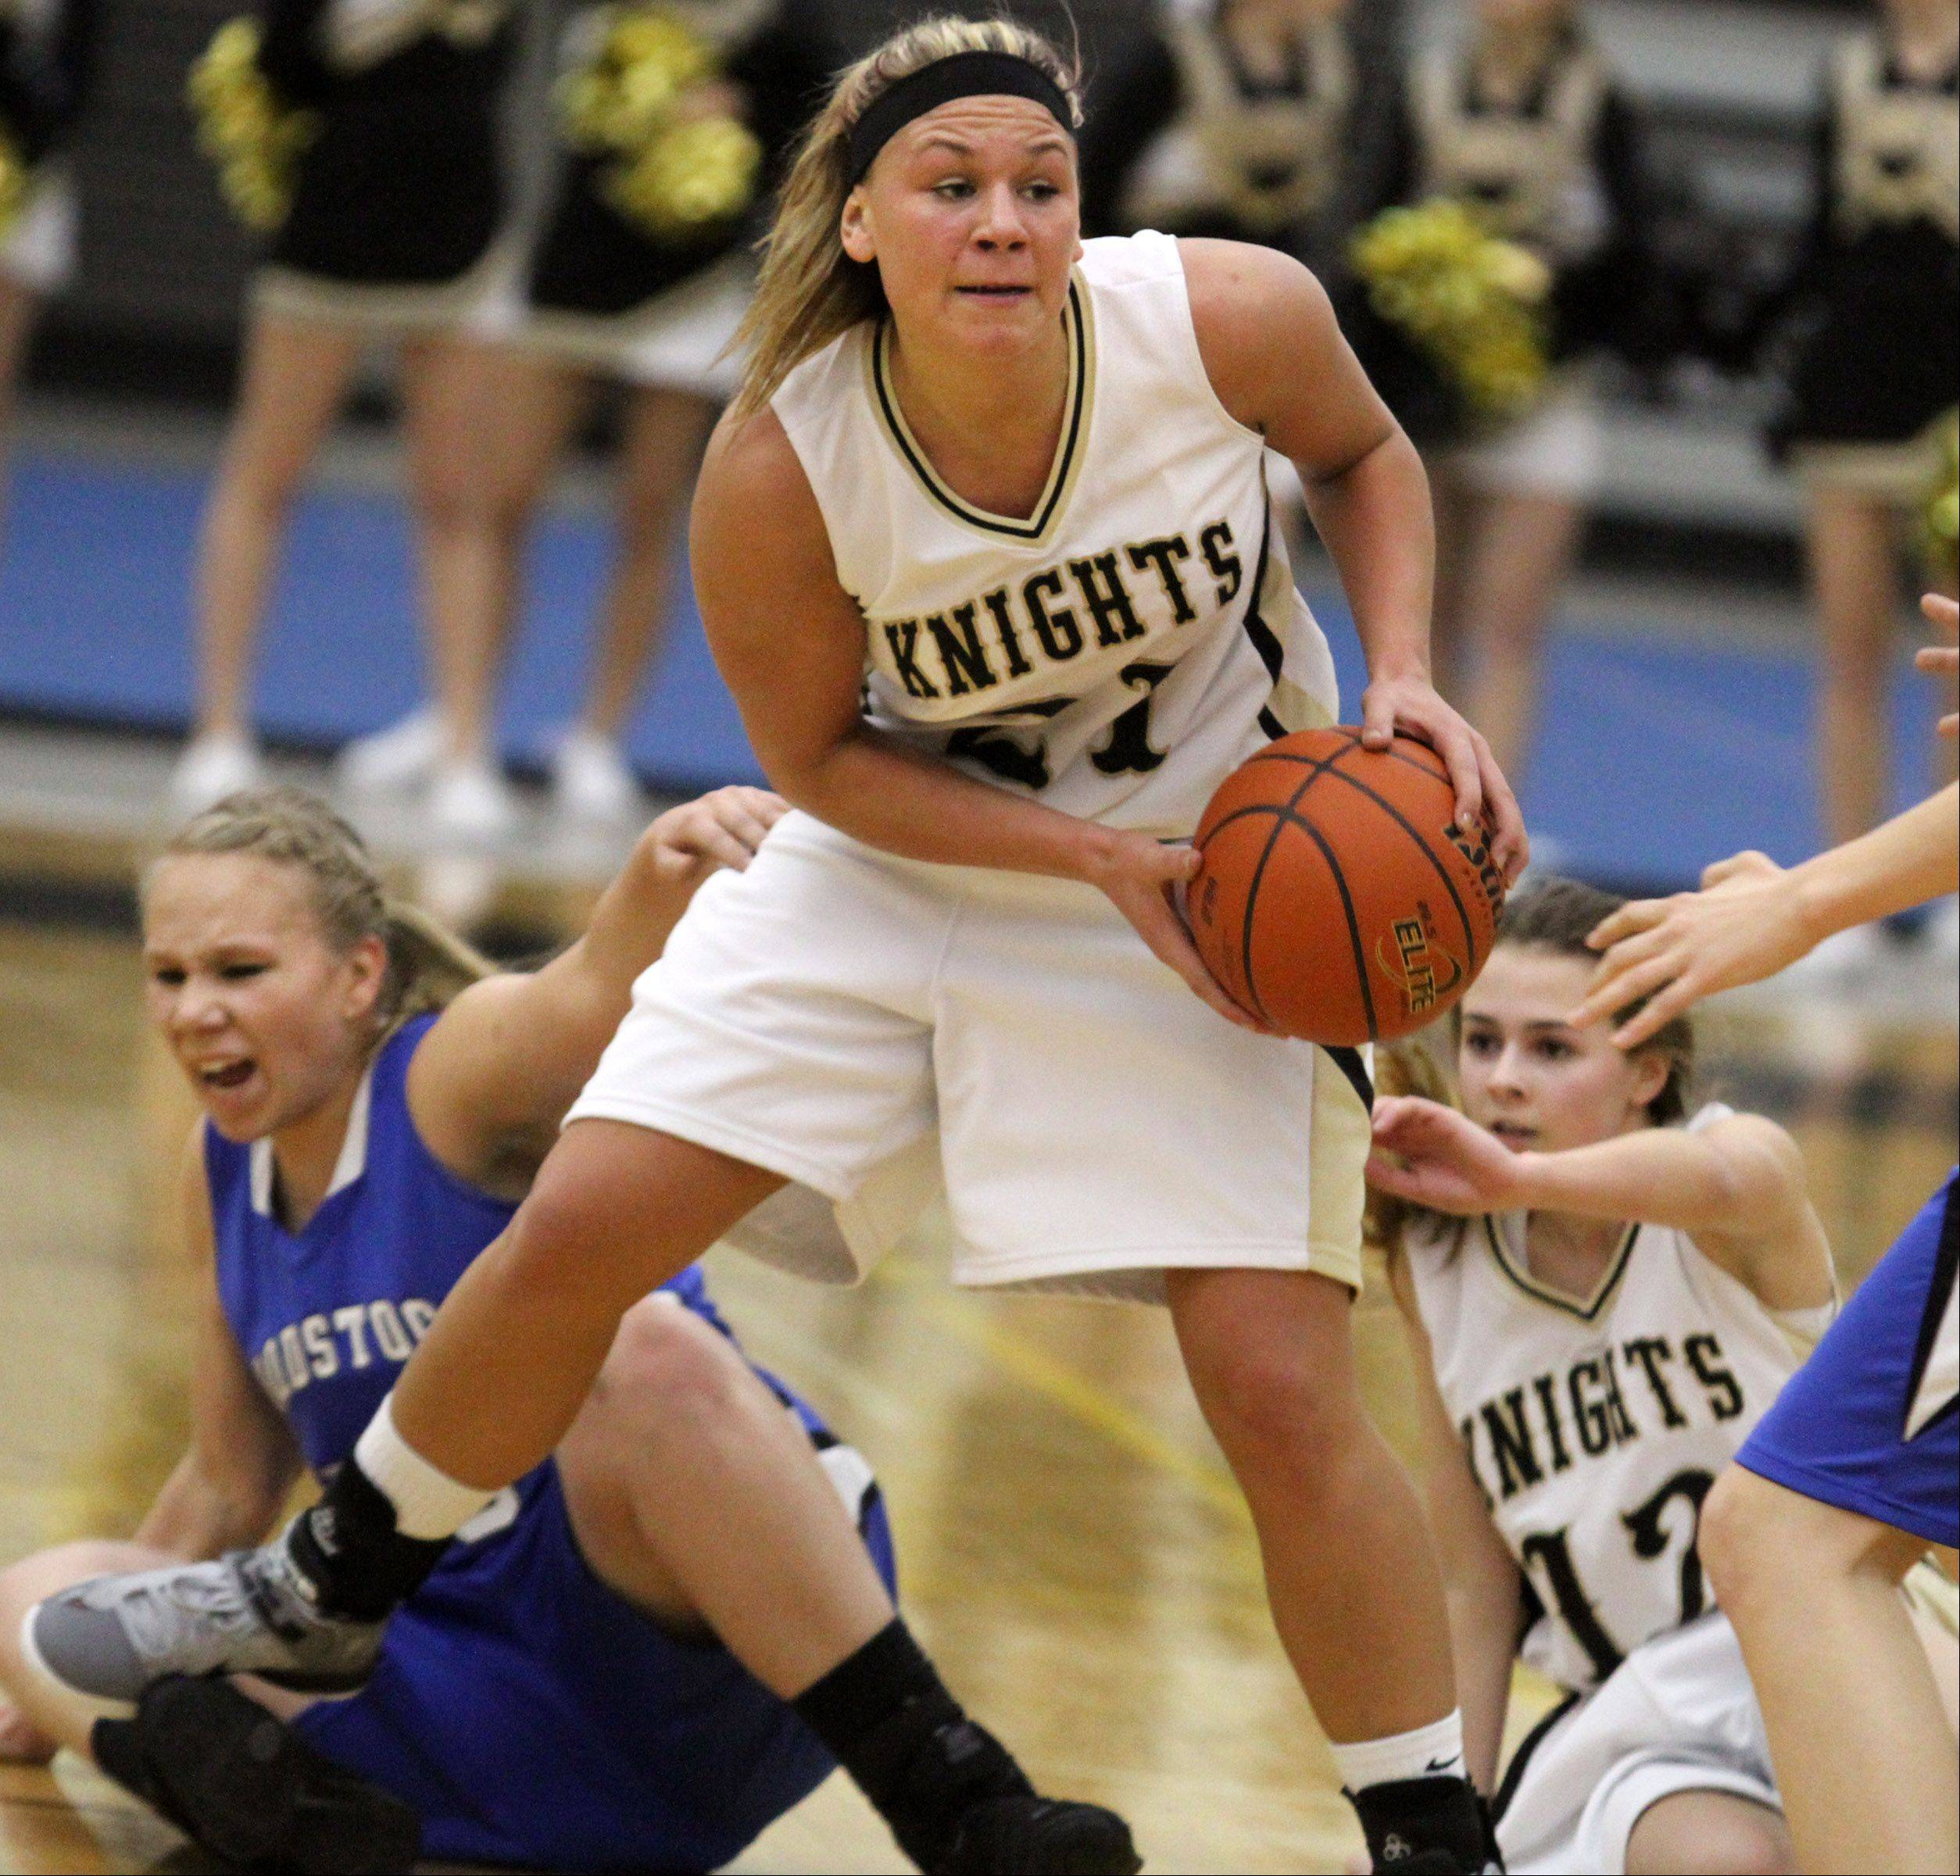 Grayslake North's Shyanne Ludwick looks to pass after picking up a loose ball against Woodstock in Grayslake on Friday.